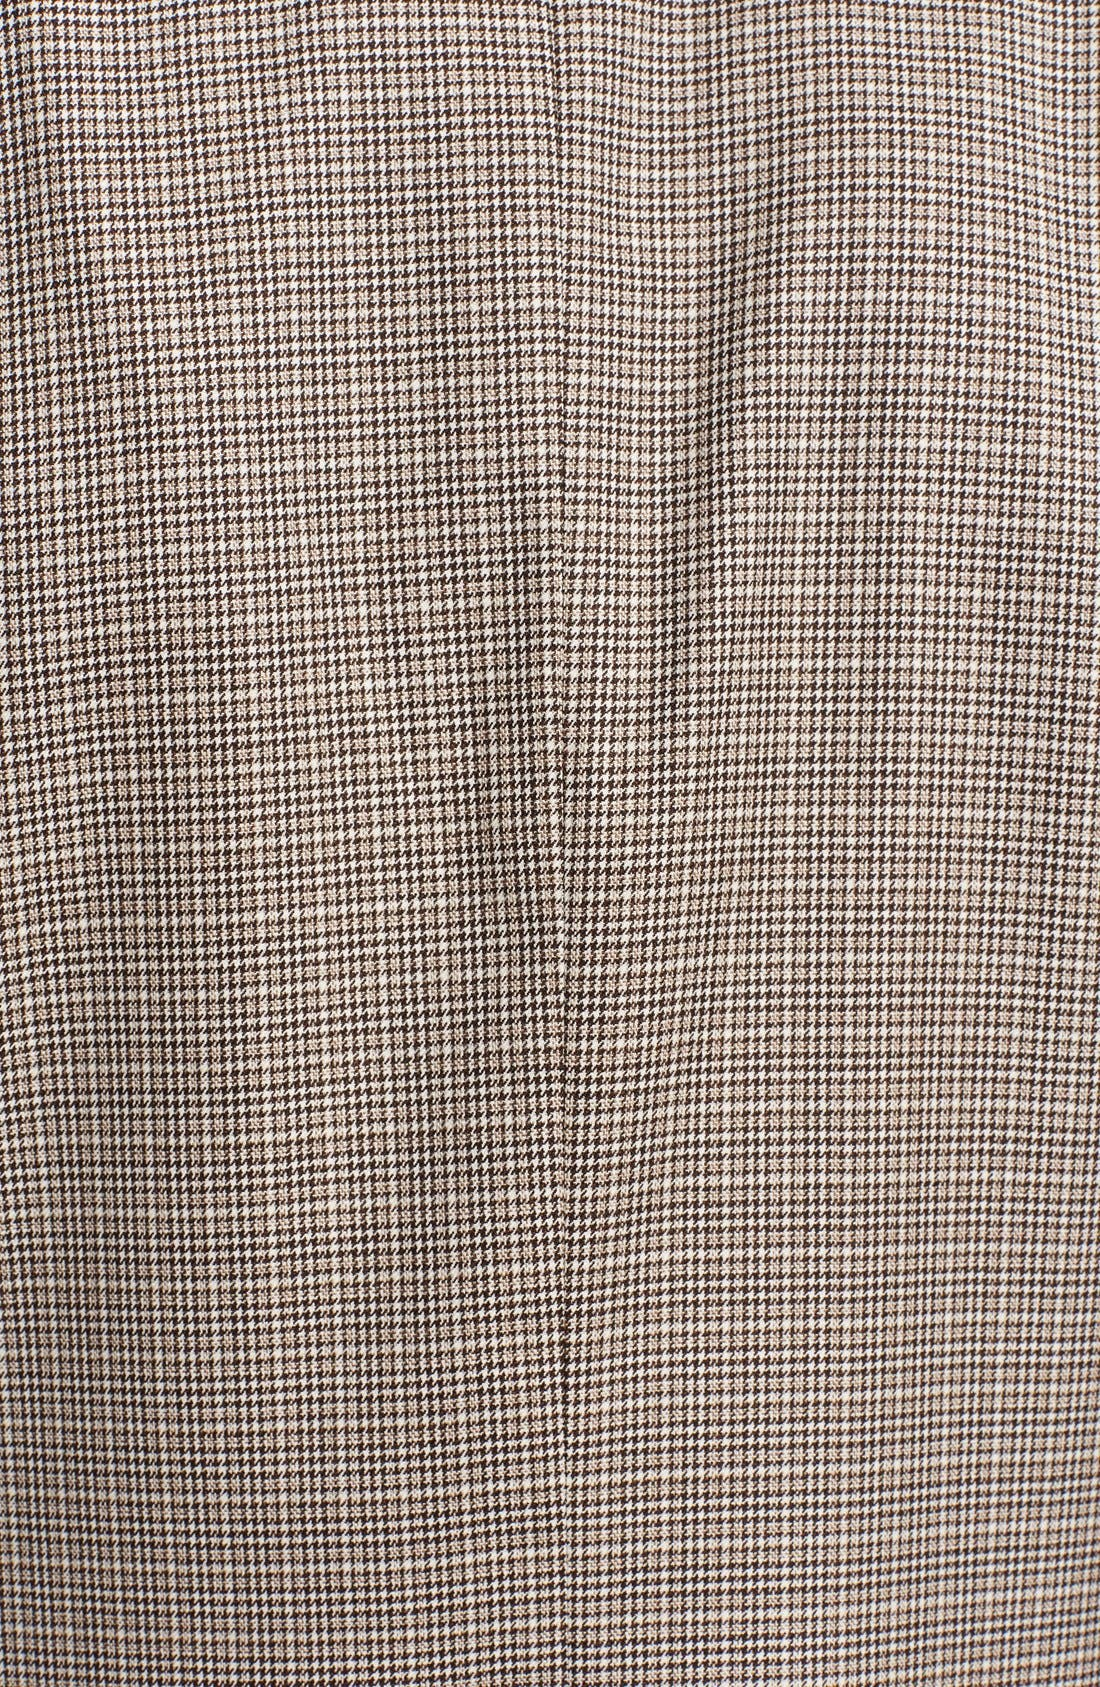 Alternate Image 3  - Canali Classic Fit Houndstooth Wool Sportcoat